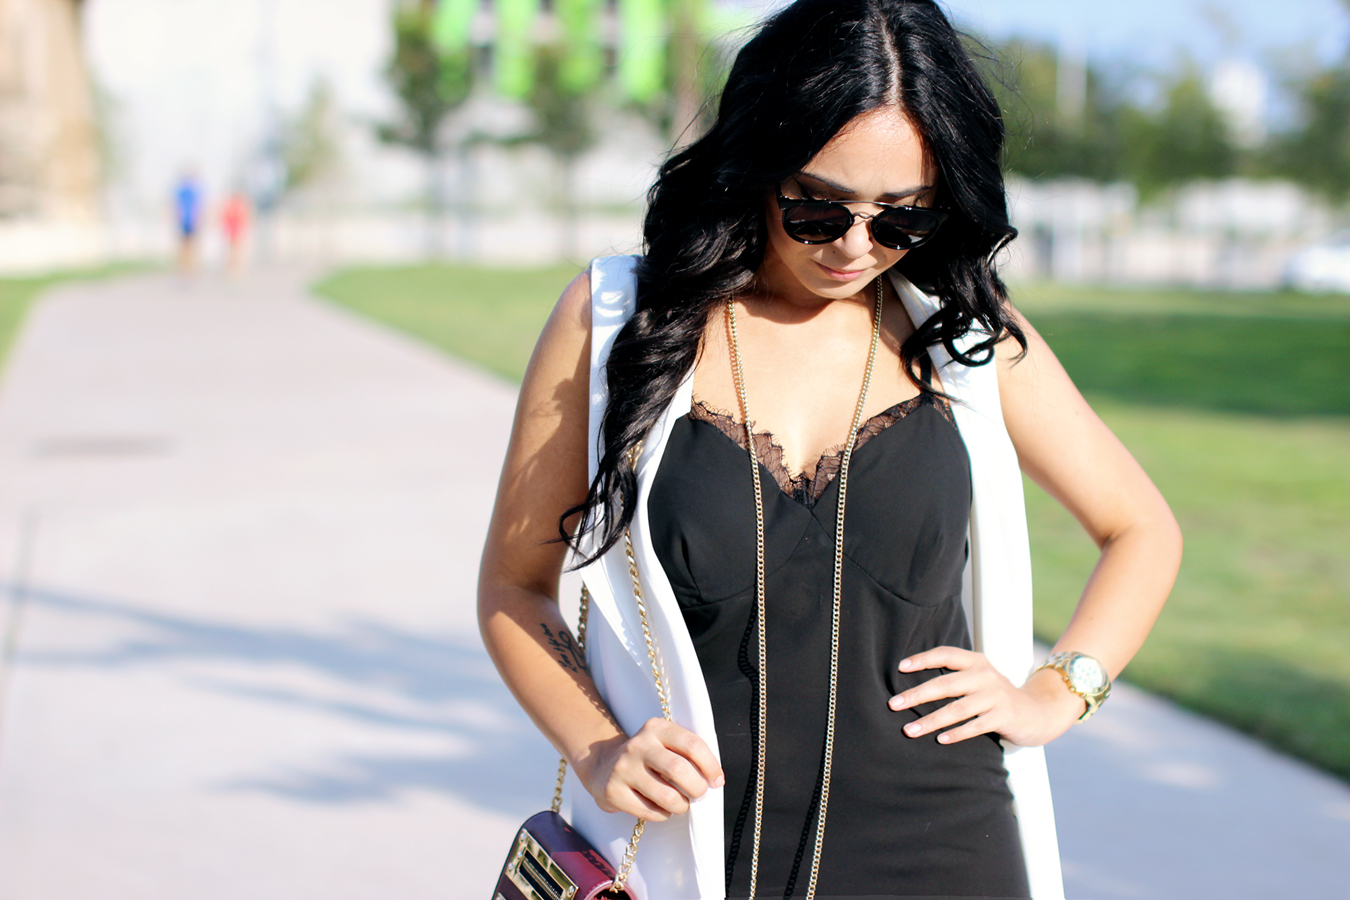 FIXIN-TO-THRILL-SLIP-DRESS-LONGLINE-VEST-BLACK-WHITE-FALL-ATX-AUSTIN-STYLE-BLOG-SHIRTS-COLORS-TRENDS-FW15-TRENDY-CHIC-GLAM-FASHION-TEXAS-3